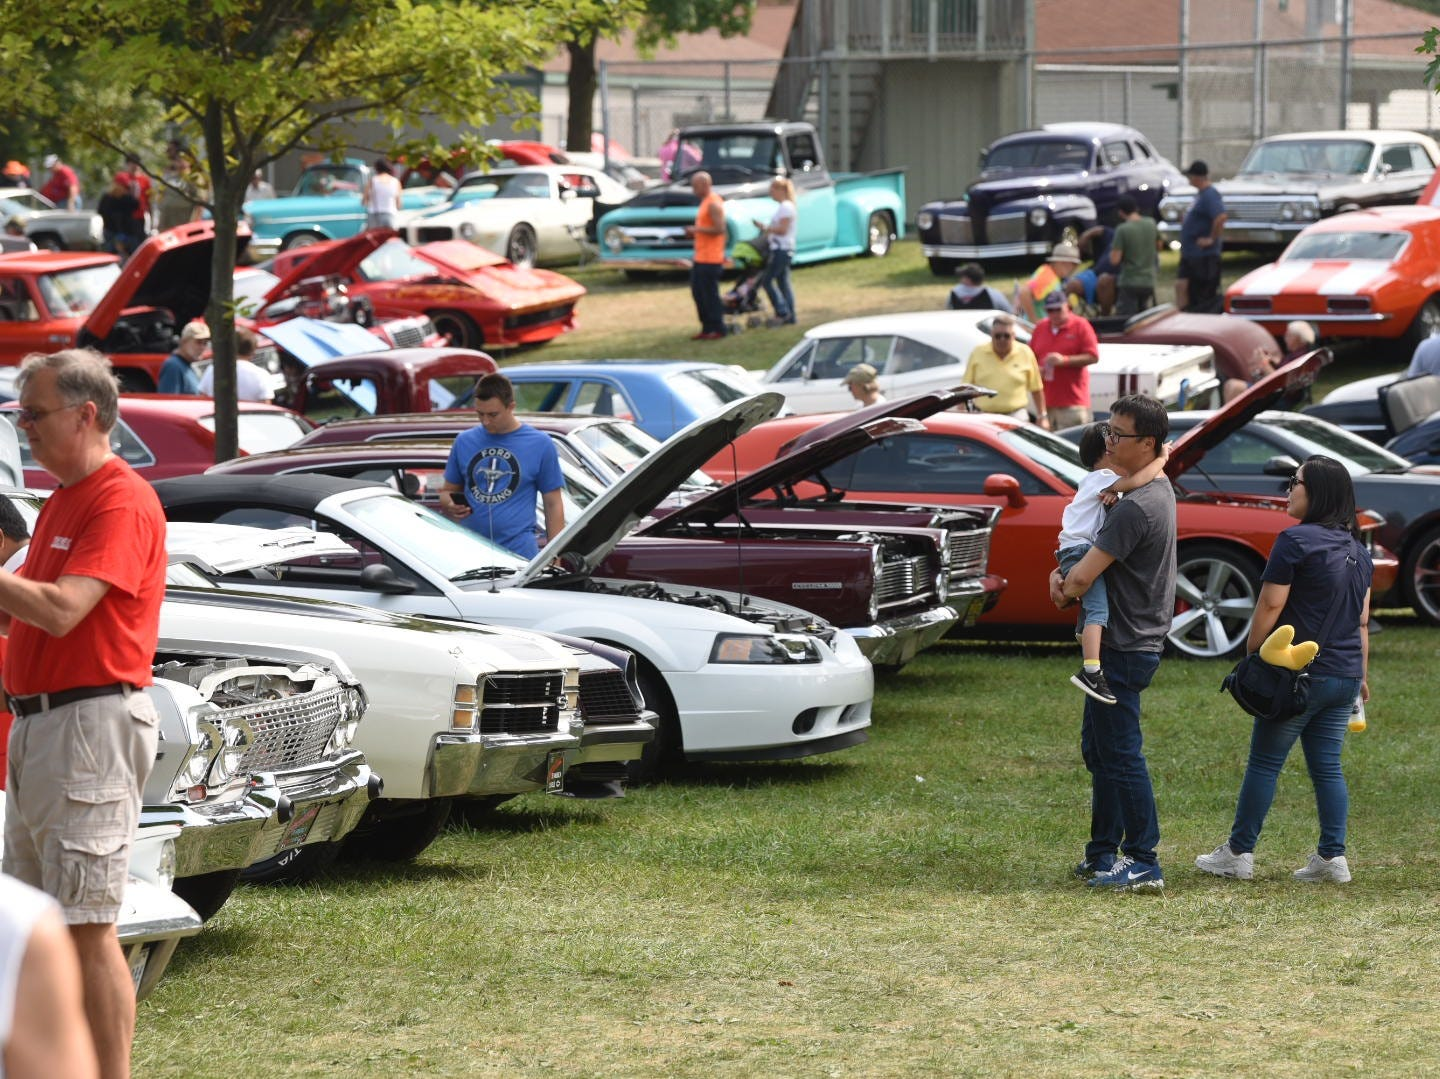 Families enjoy the weather at Memorial Park in Royal Oakand the large variety of vintage cars on display for the Woodward Dream Cruise.